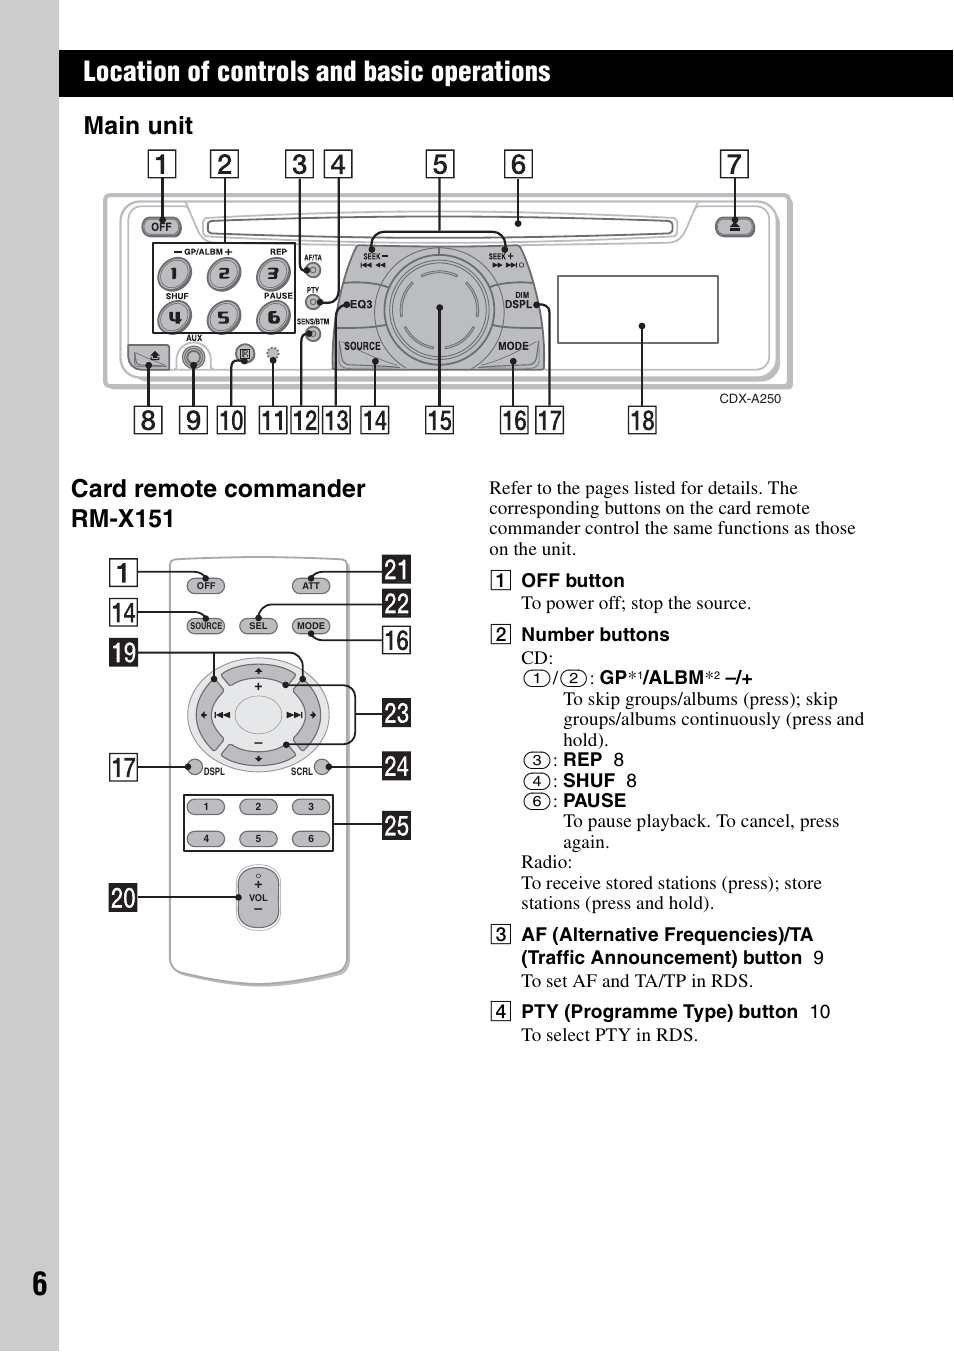 Location of controls and basic operations, Main unit, Card